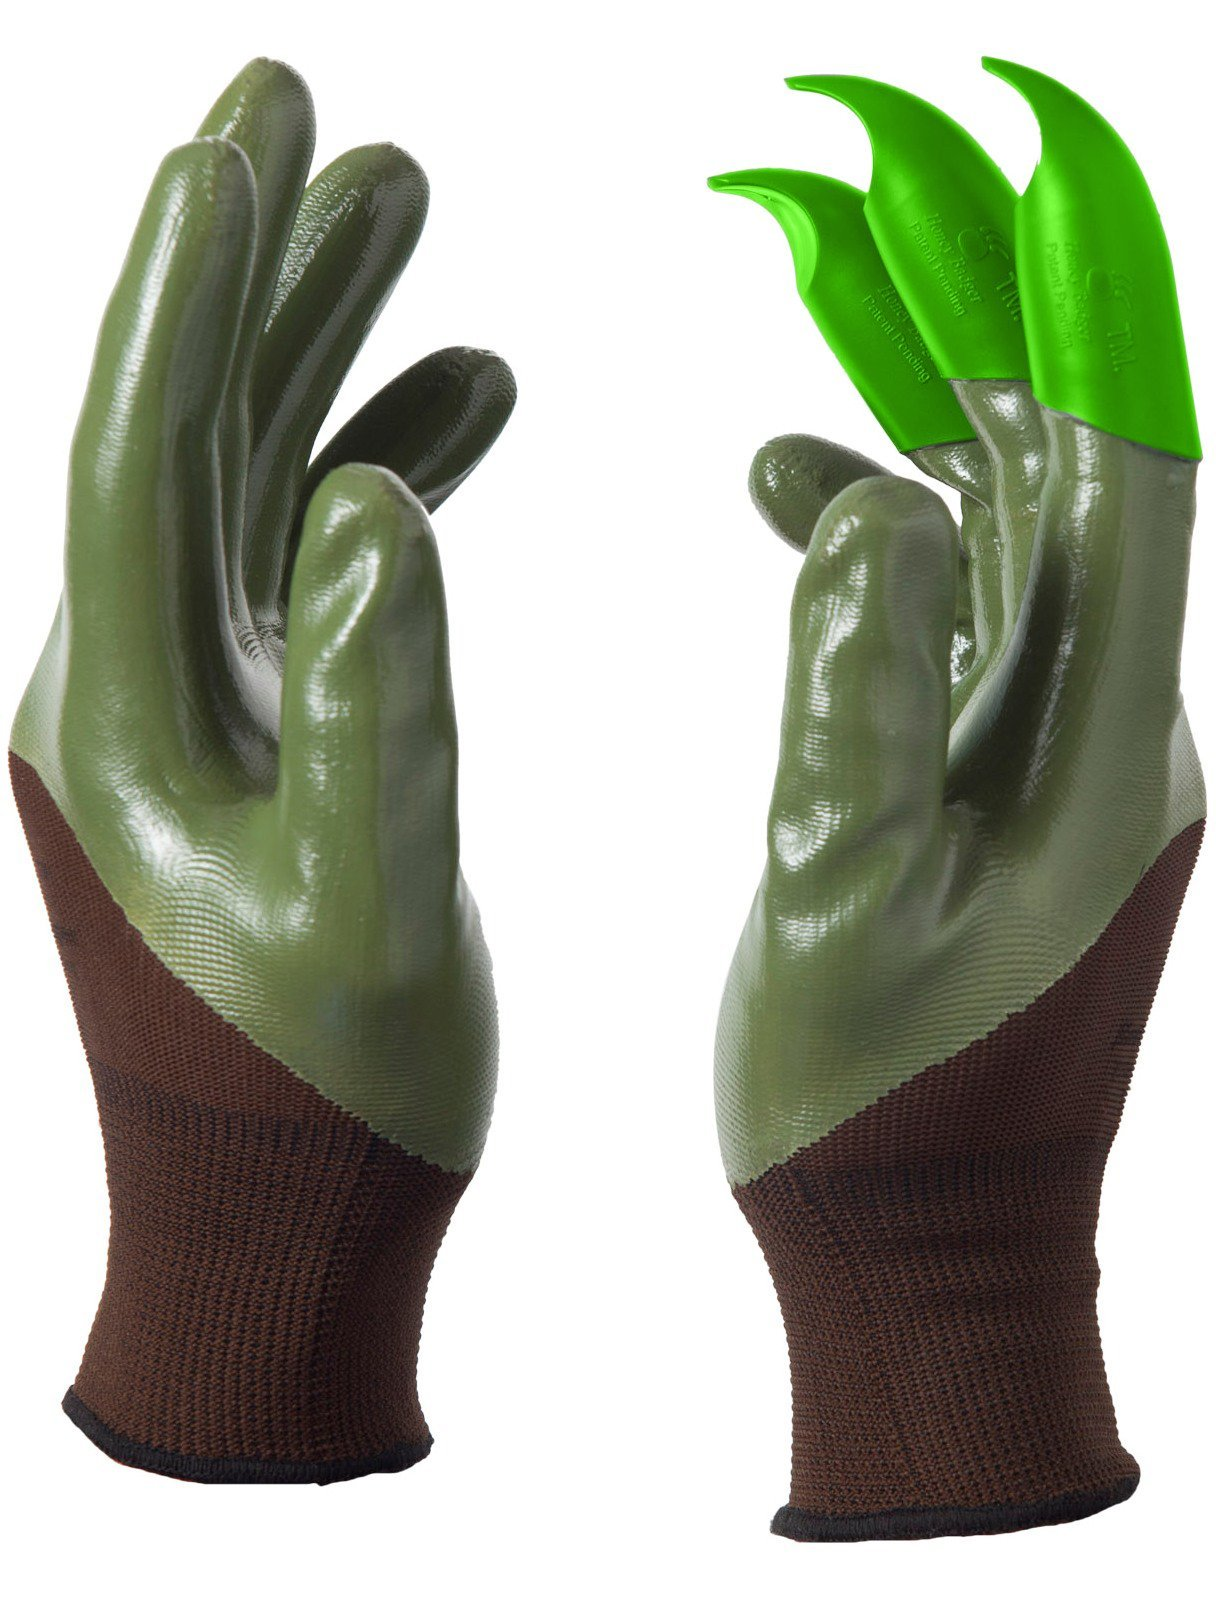 Honey Badger Garden Gloves for Digging & Planting - No More Worn Out Fingertips - Claws on RIGHT Hand - Womens & Mens Unisex - PATENT PENDING